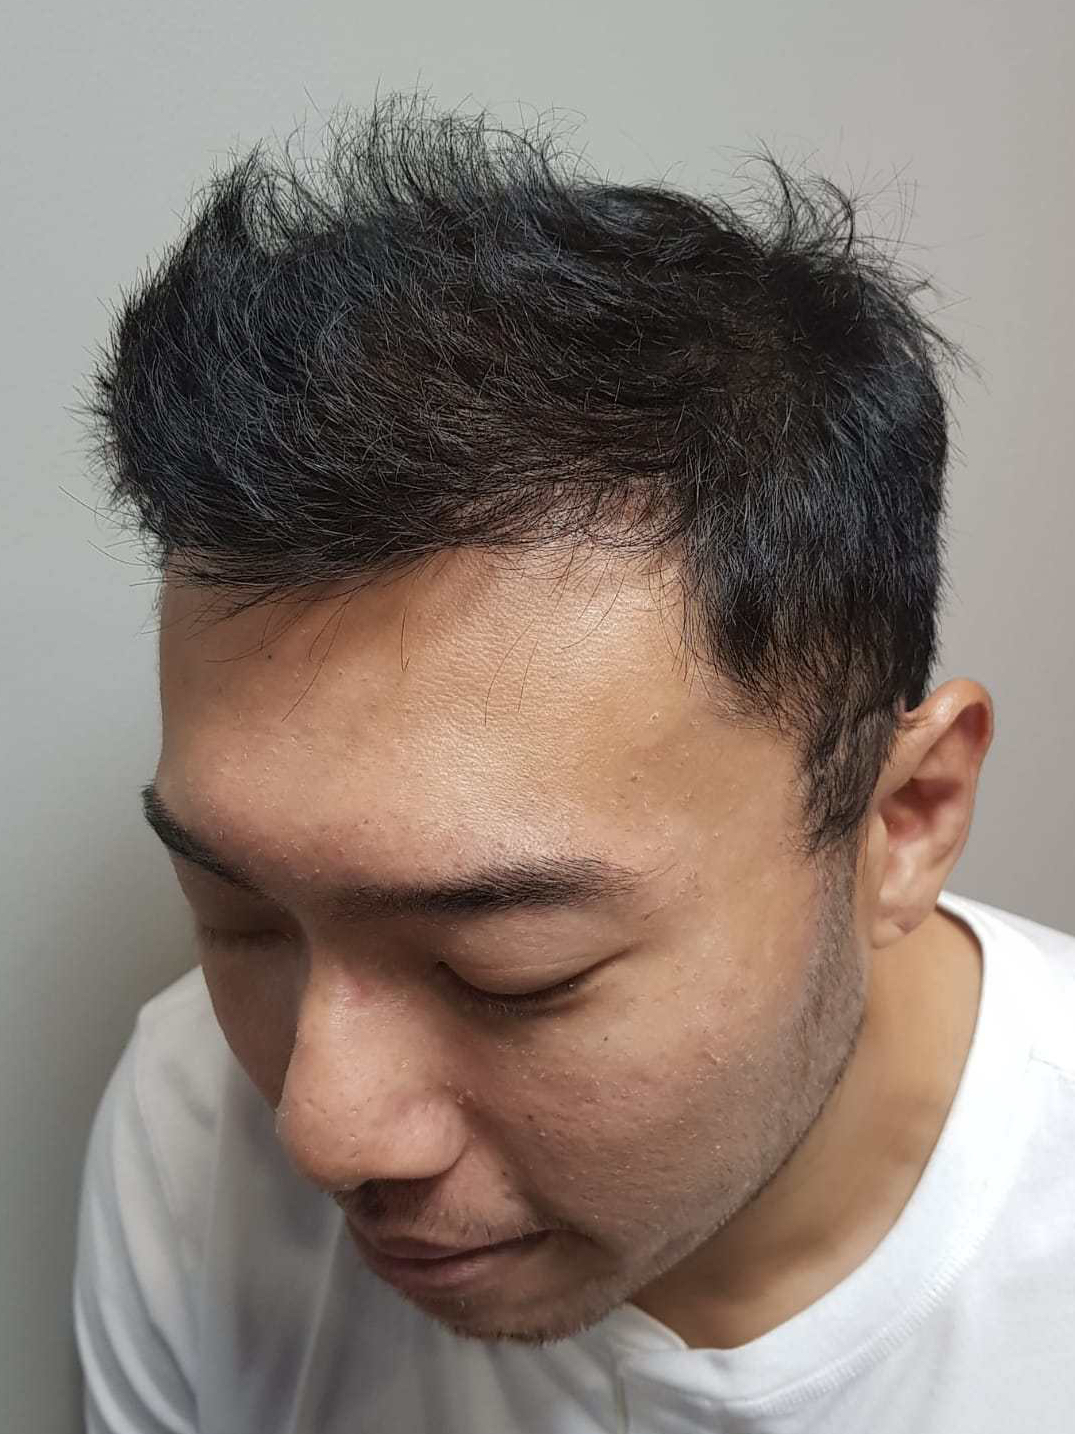 After FUE hair transplant surgery (five months)